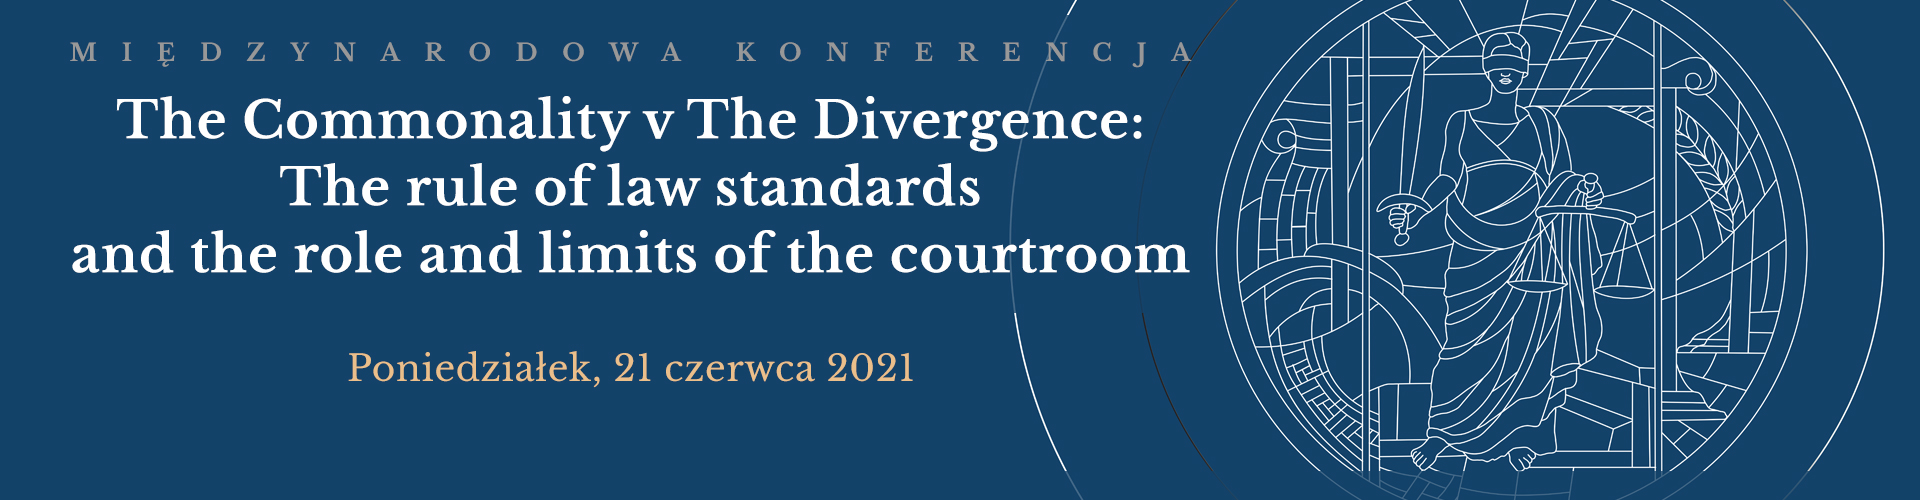 The Commonality v The Divergence: The rule of law standards and the role and limits of the courtroom